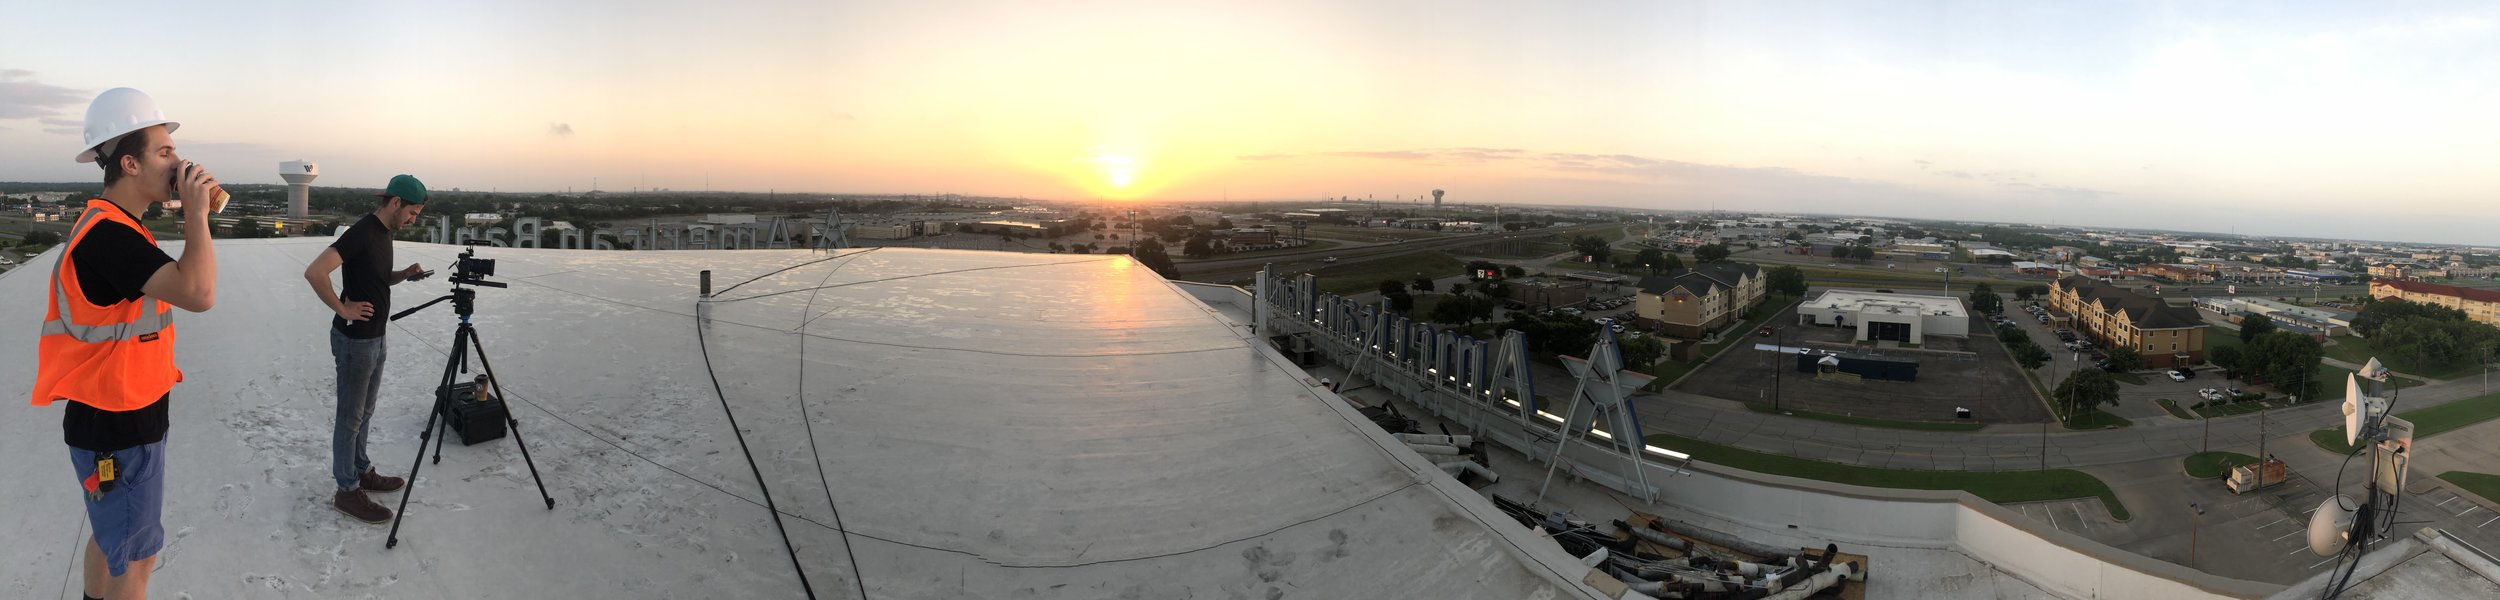 Sunrise on a high-rise. Josh and James grab a beautiful time-lapse while I chill out and take this pic.